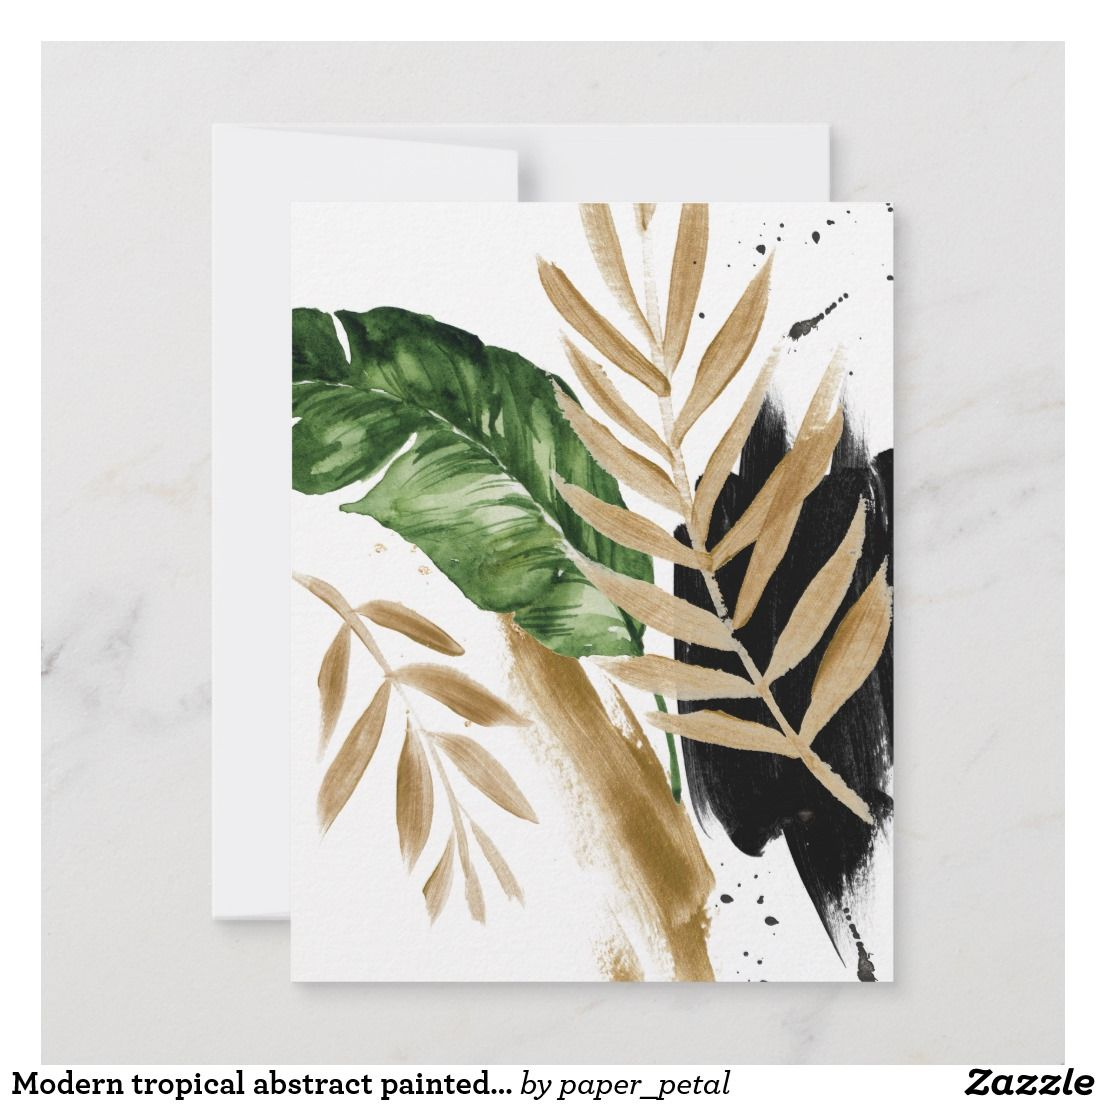 Modern Tropical Abstract Painted Wedding Details Rsvp Card Zazzle Com In 2021 Abstract Painting Abstract Tropical Wall Art